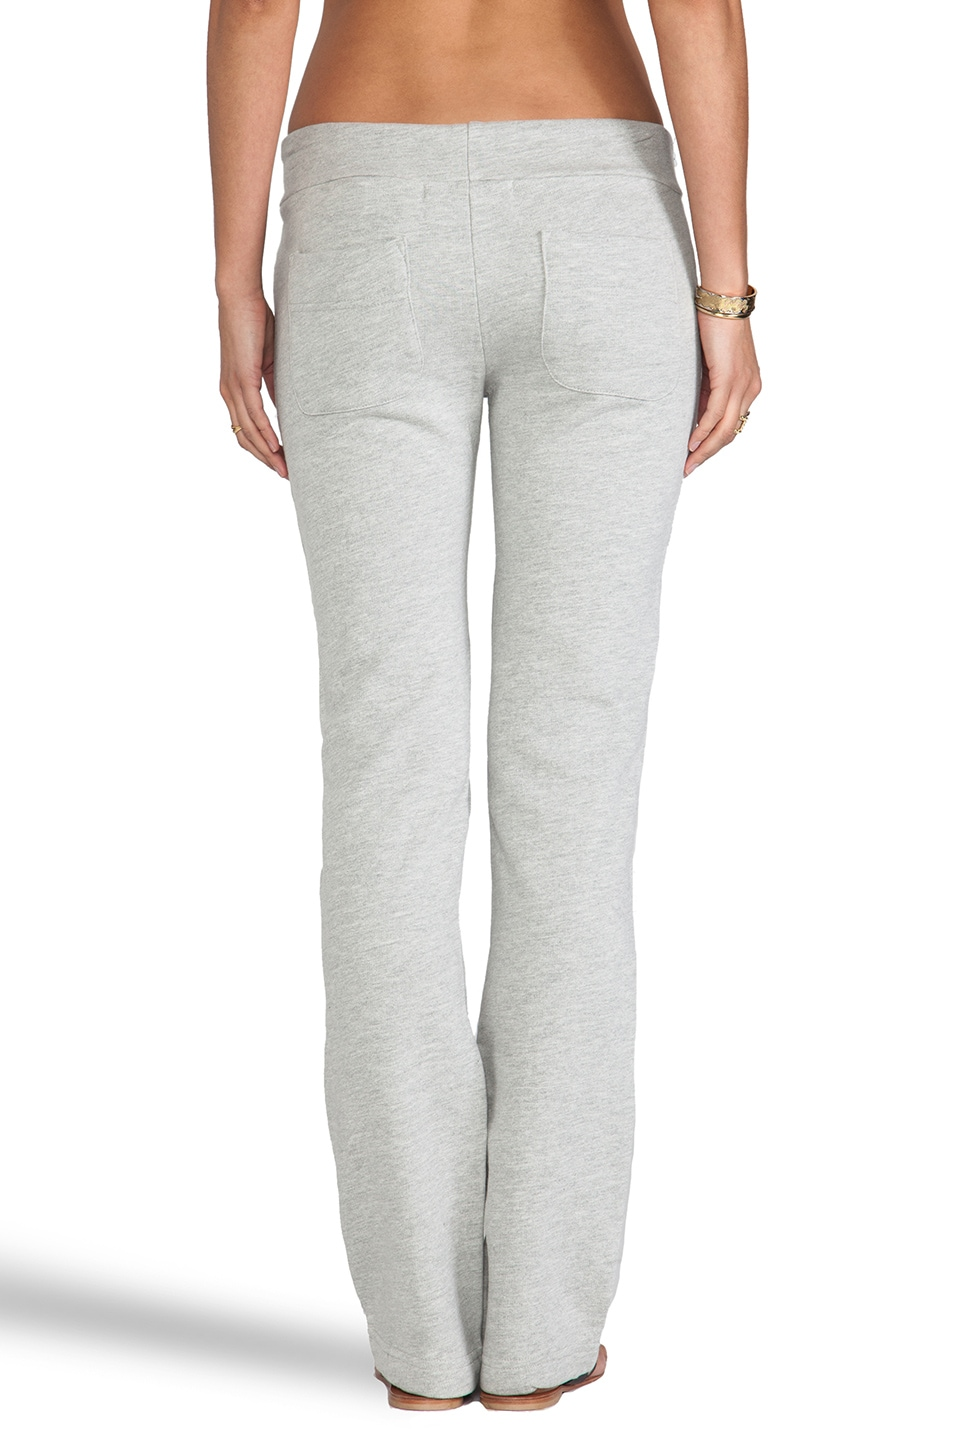 A Fine Line Phoenix Welt Pocket Sweatpants in Heather Grey